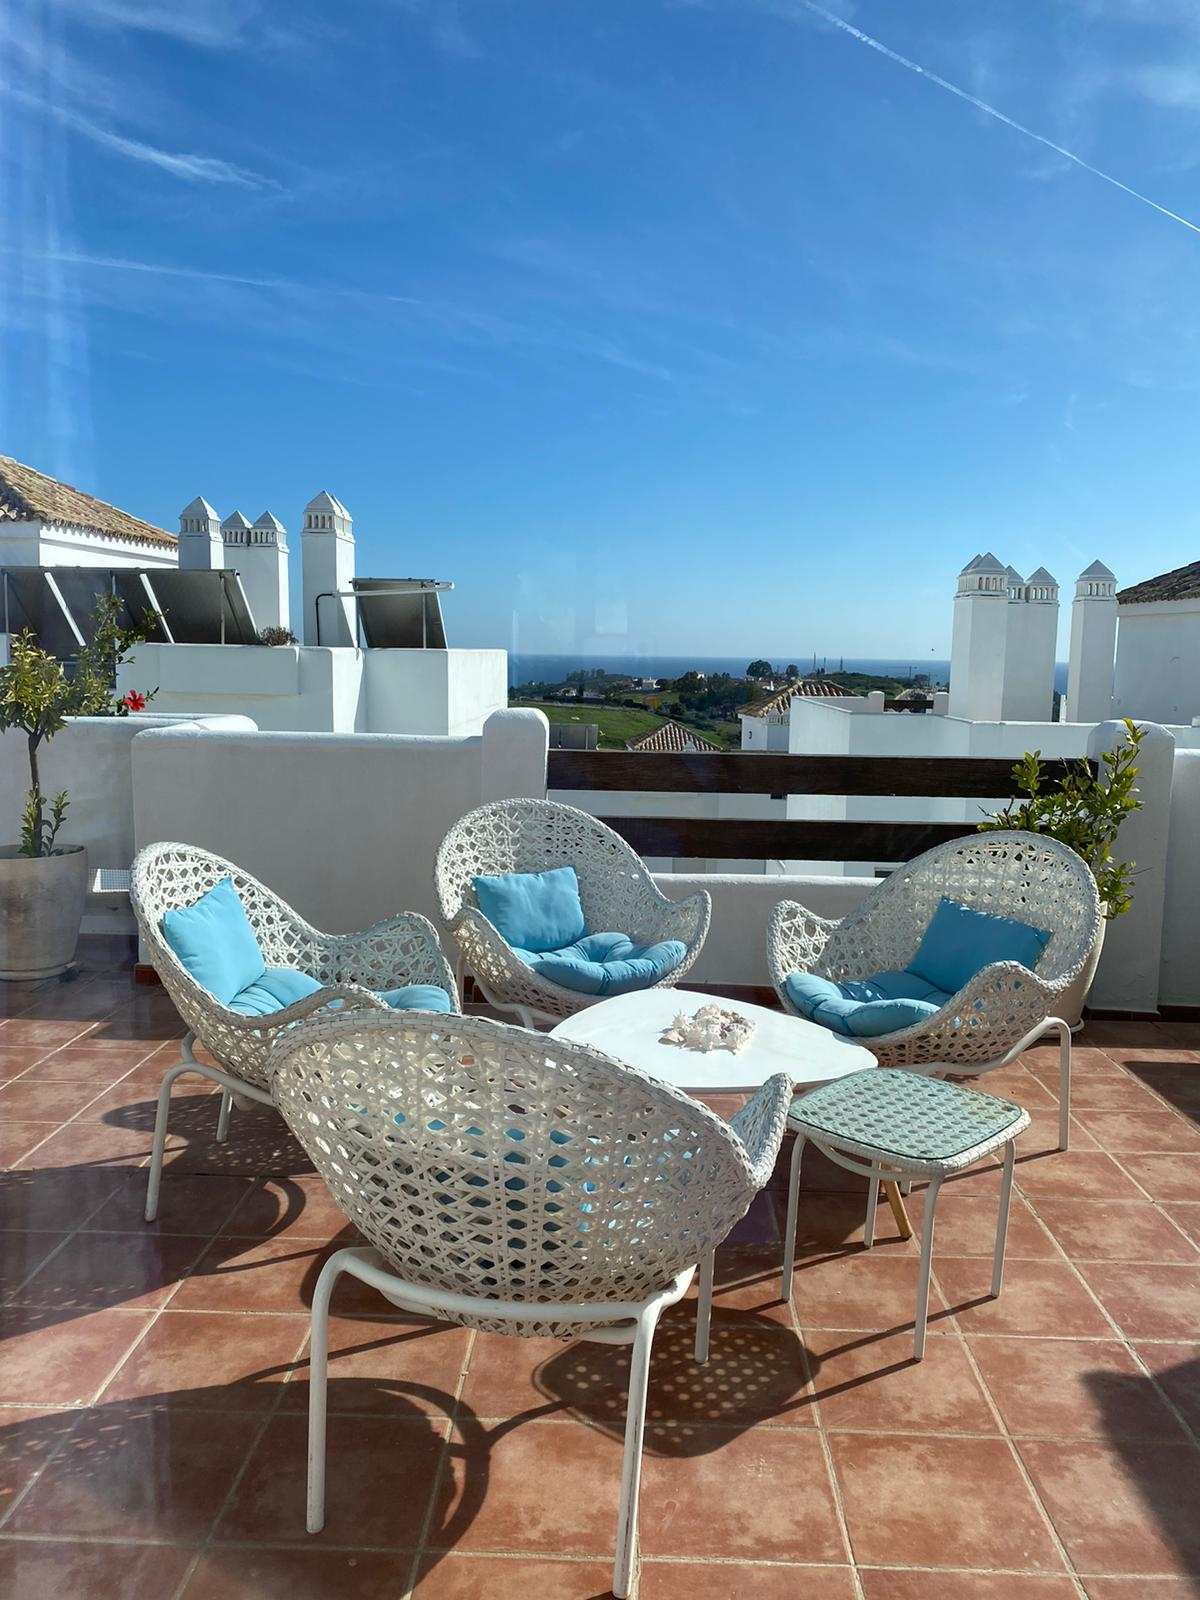 Magnificent penthouse with private access in Valle Romano - mibgroup.es